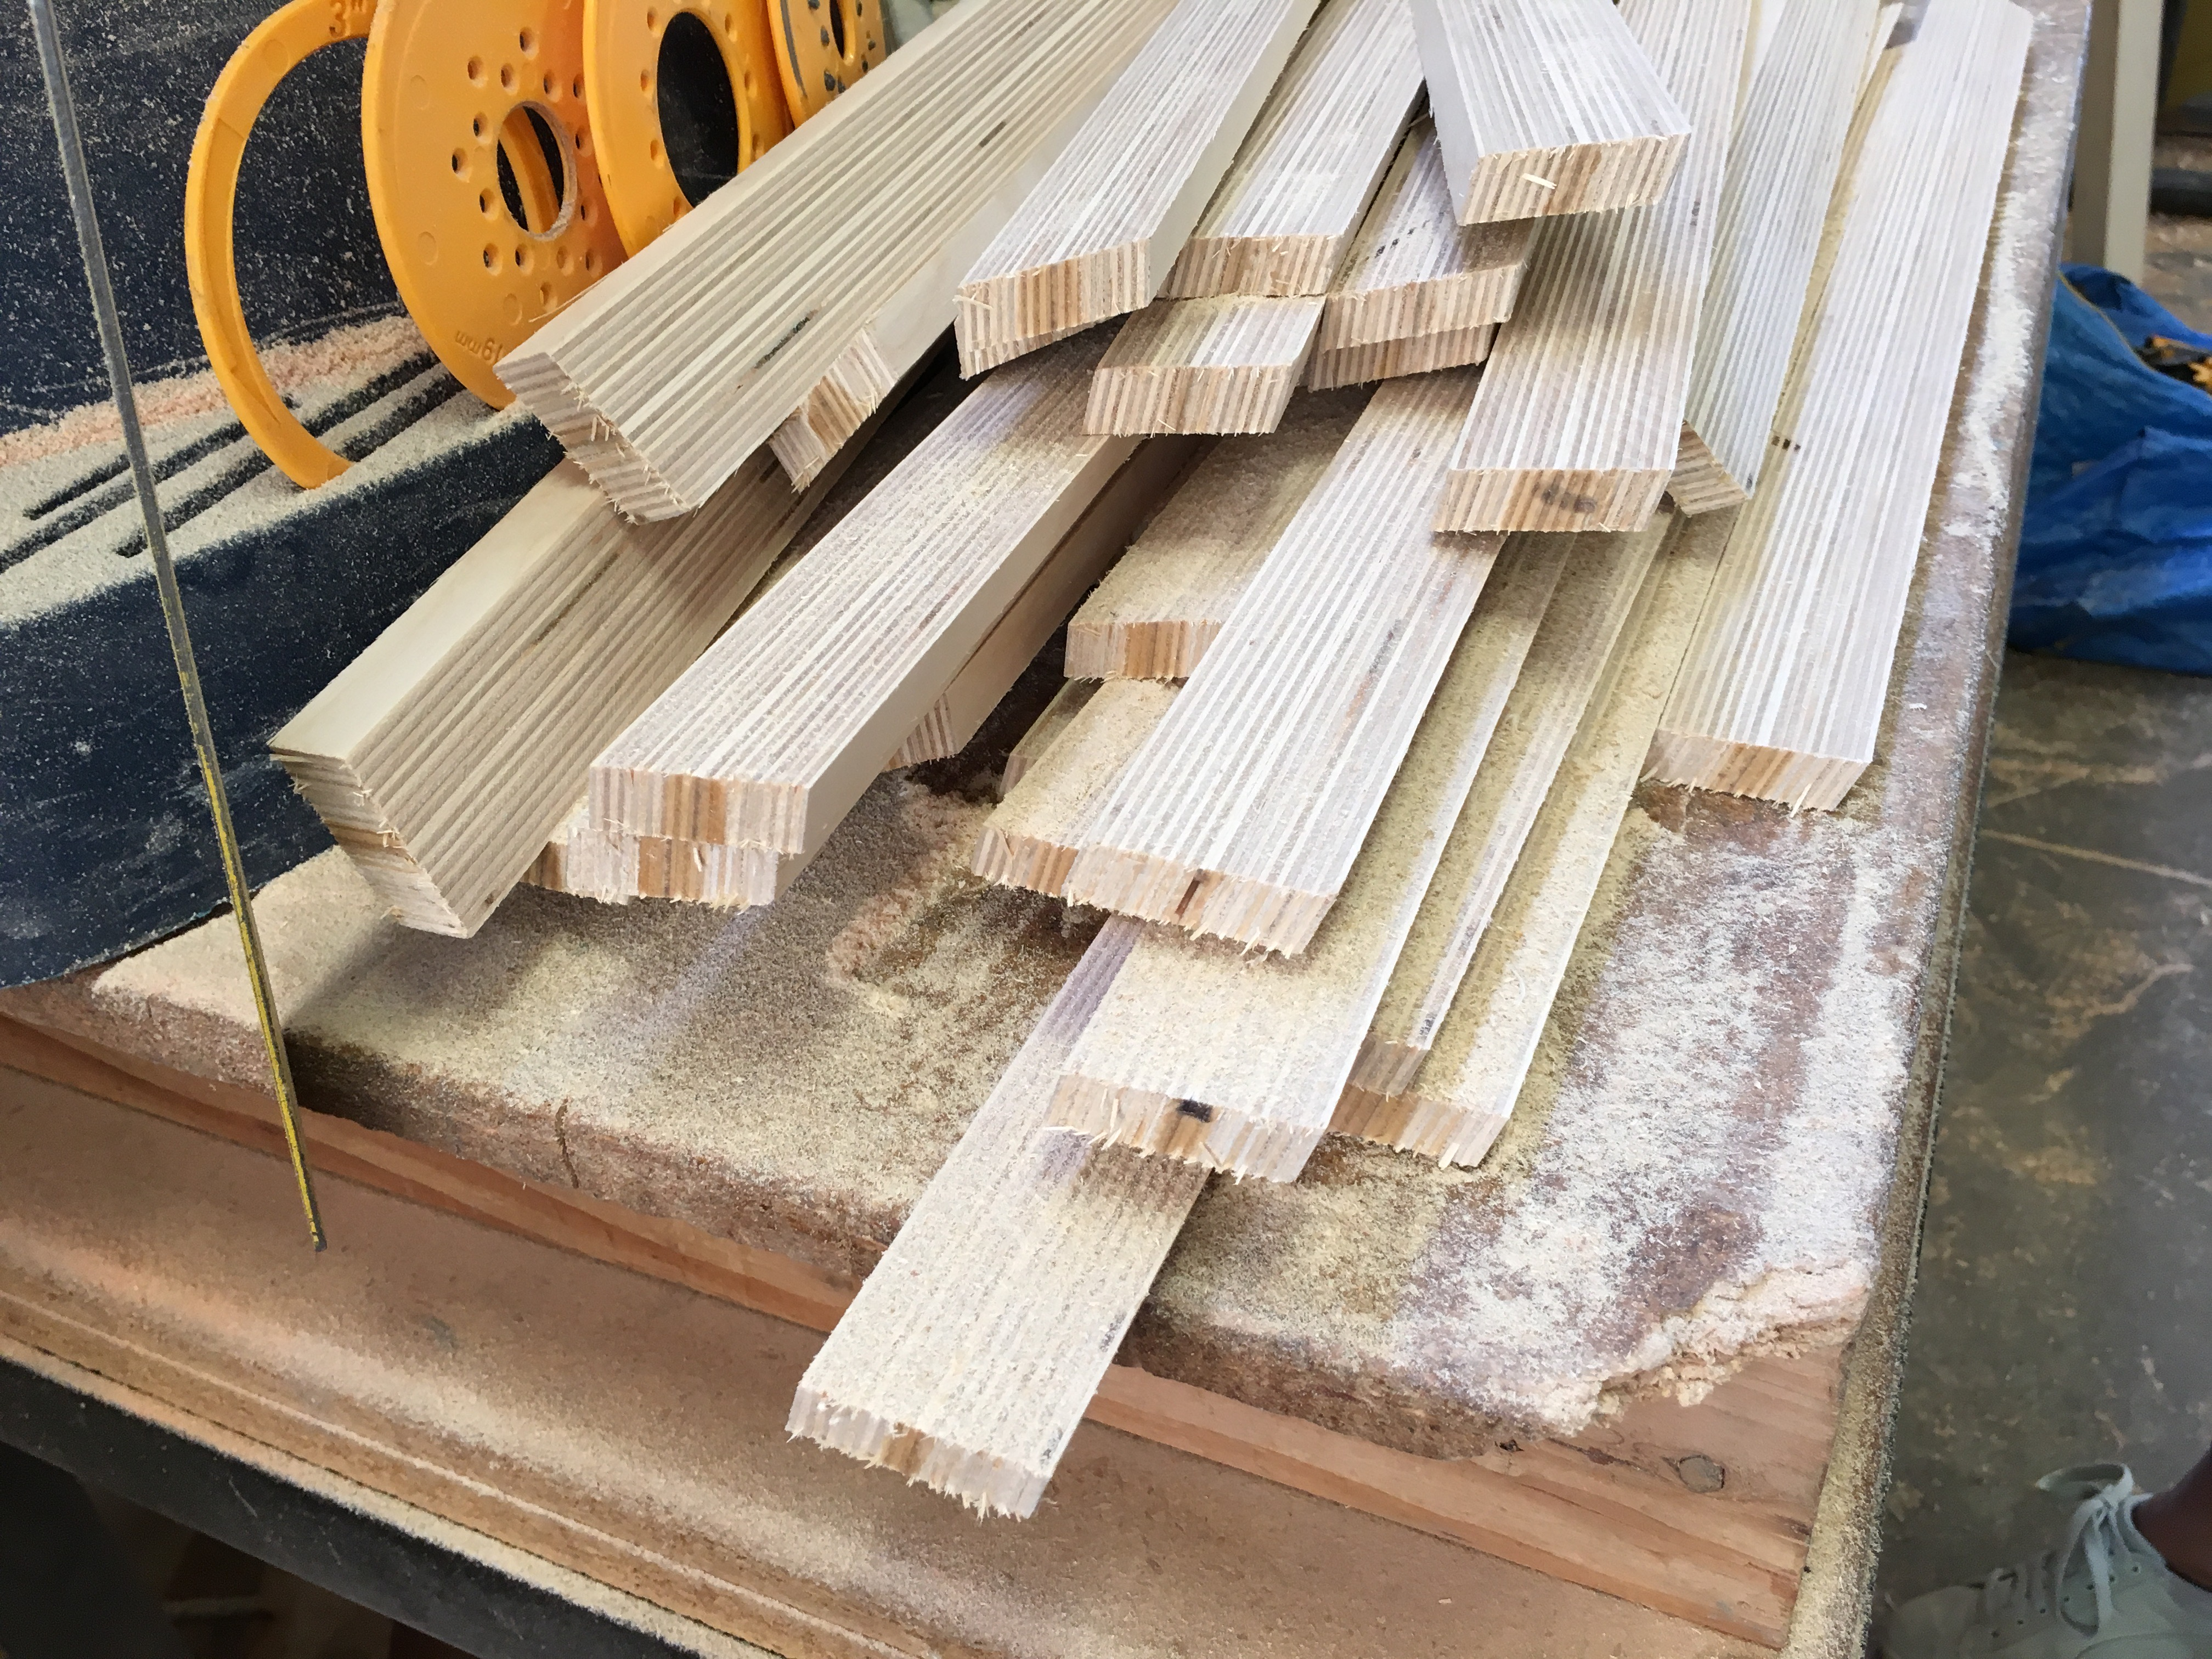 Picture of Wood Preparation and Bevel Cut